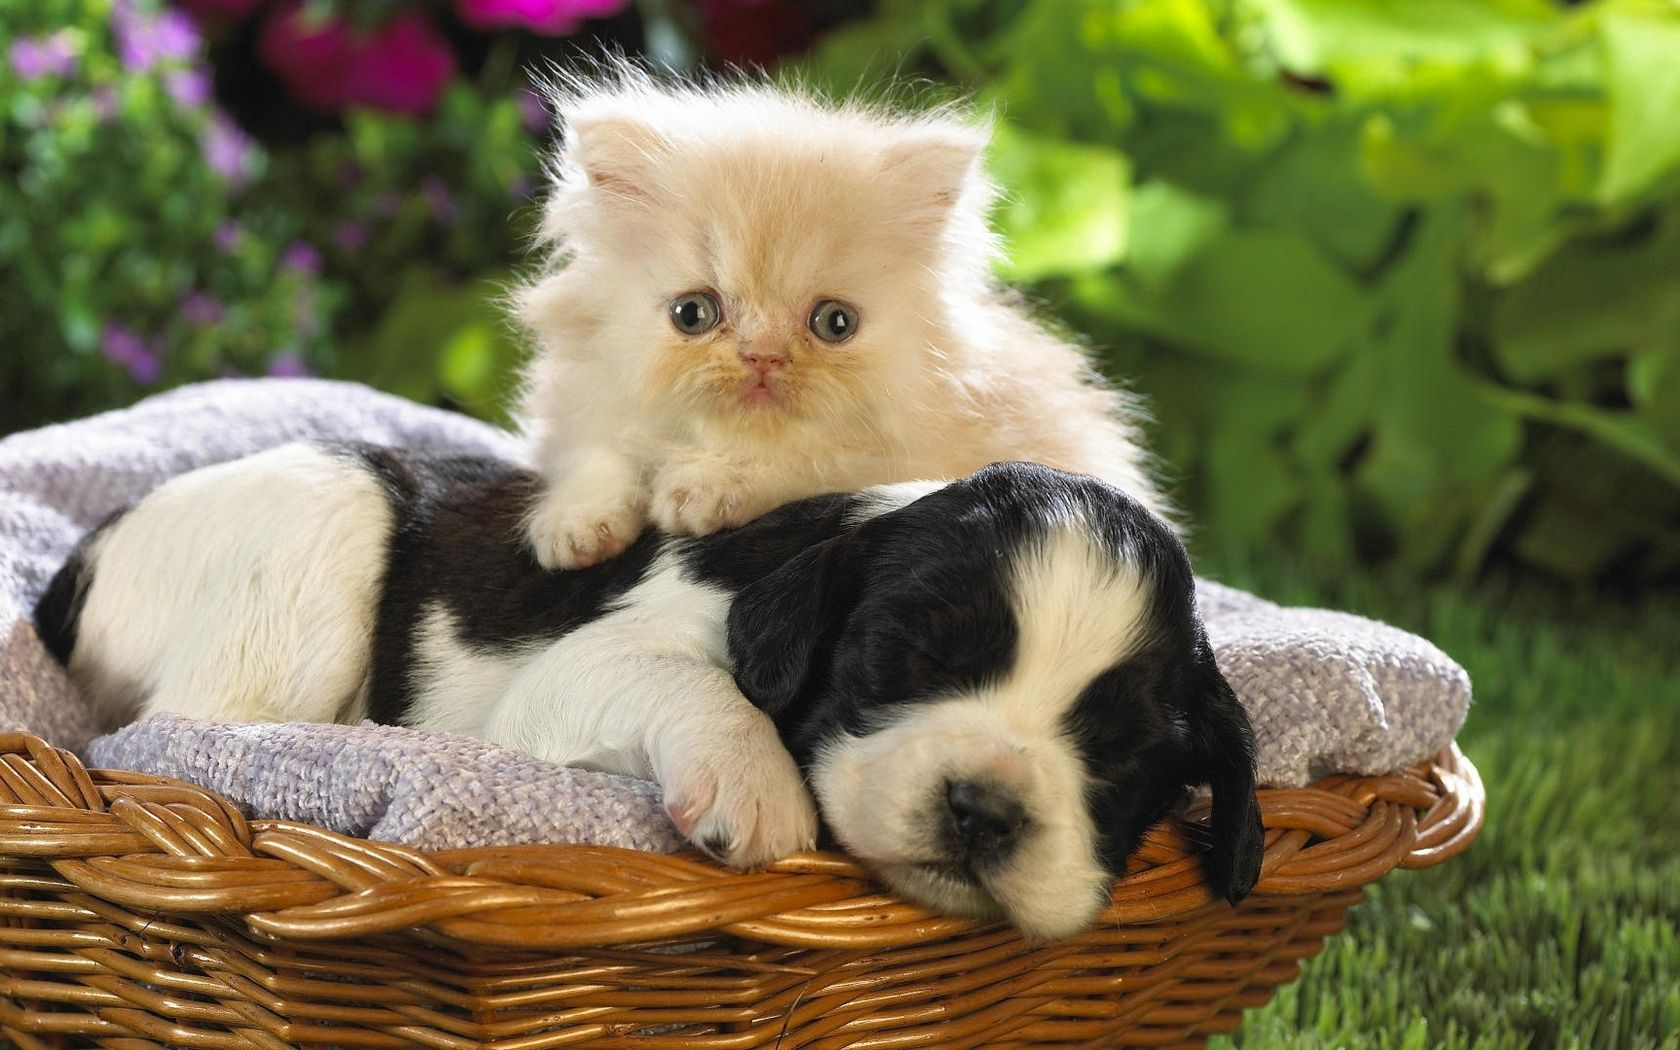 119431 download wallpaper Animals, Puppy, Kitty, Kitten, Basket, Grass, Friendship, To Lie Down, Lie, Flowers screensavers and pictures for free